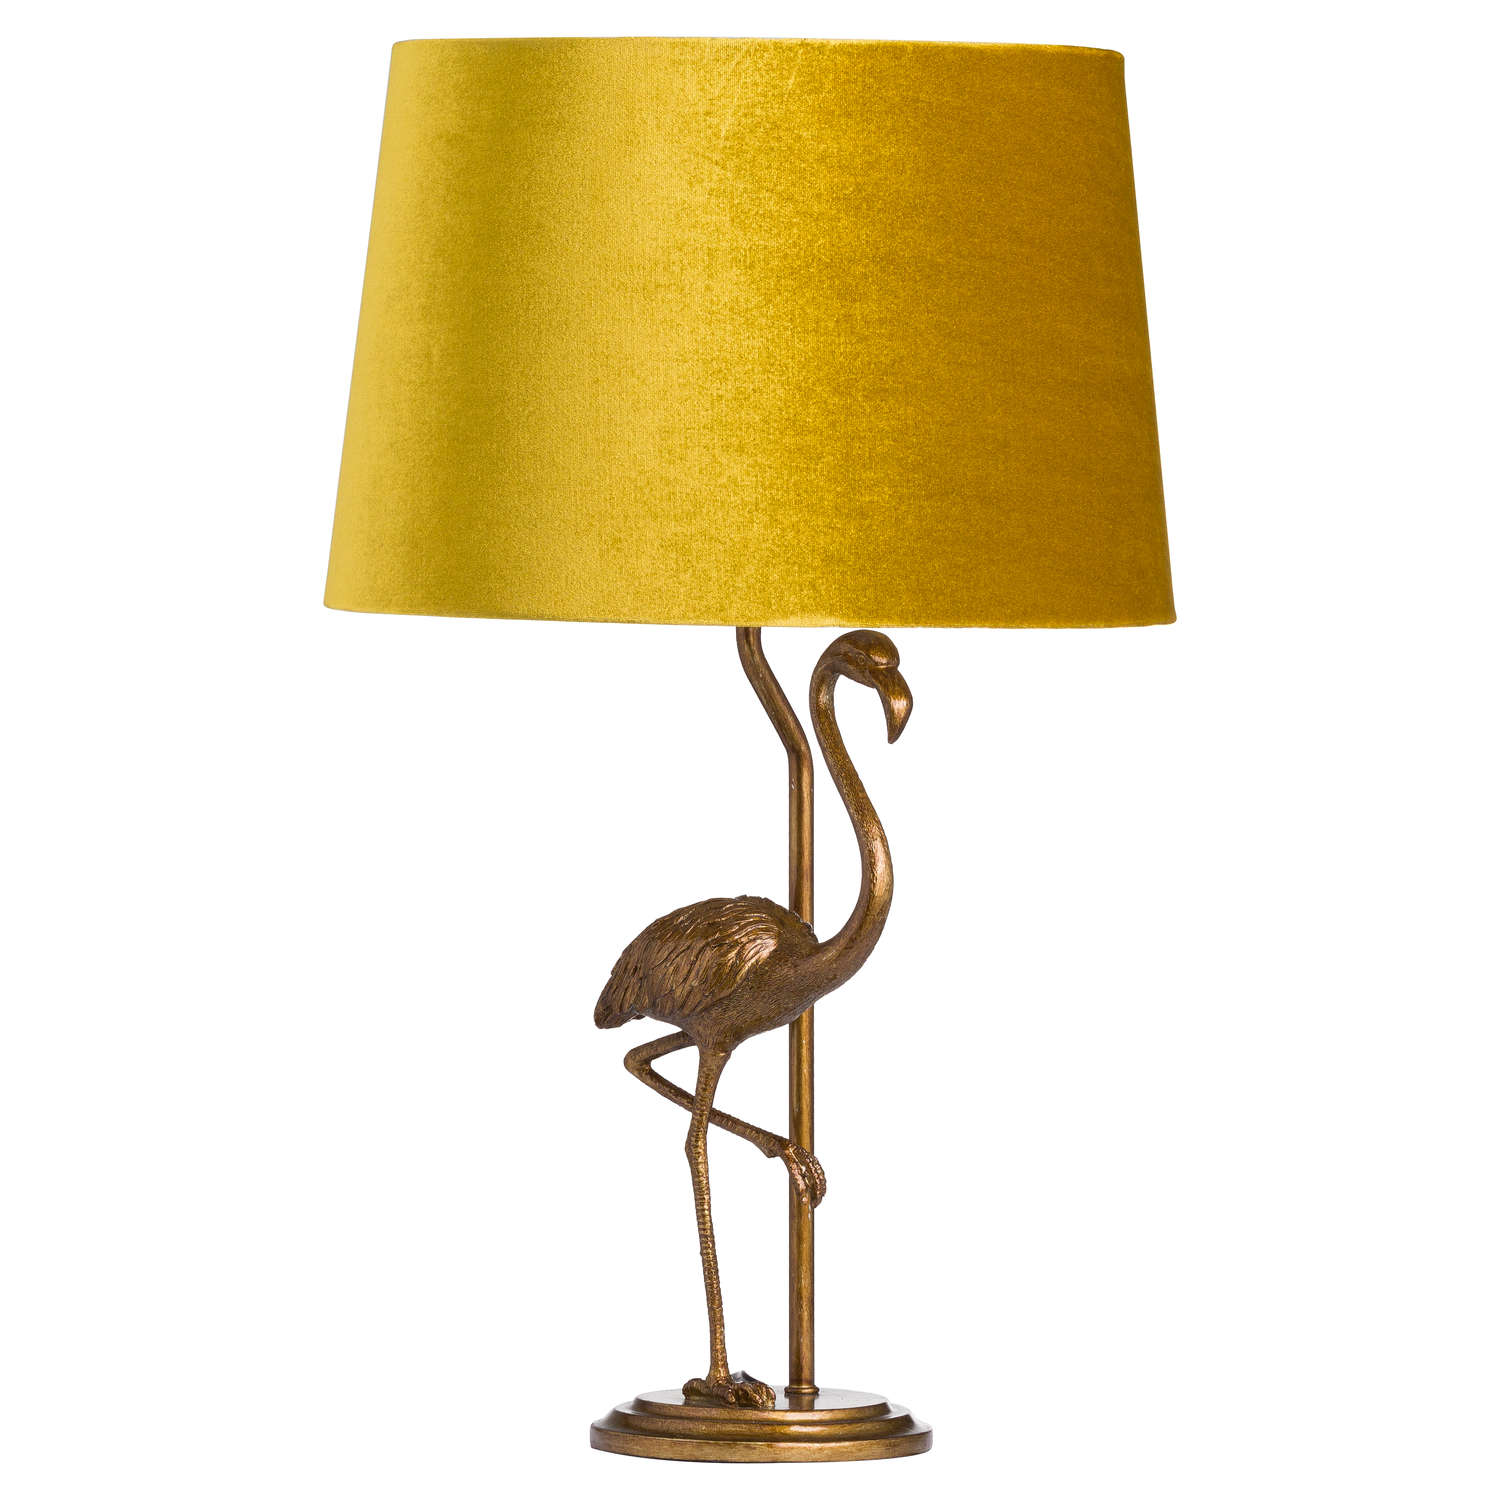 Antique Gold Flamingo Table Lamp + Mustard Velvet Shade with Gold Lining